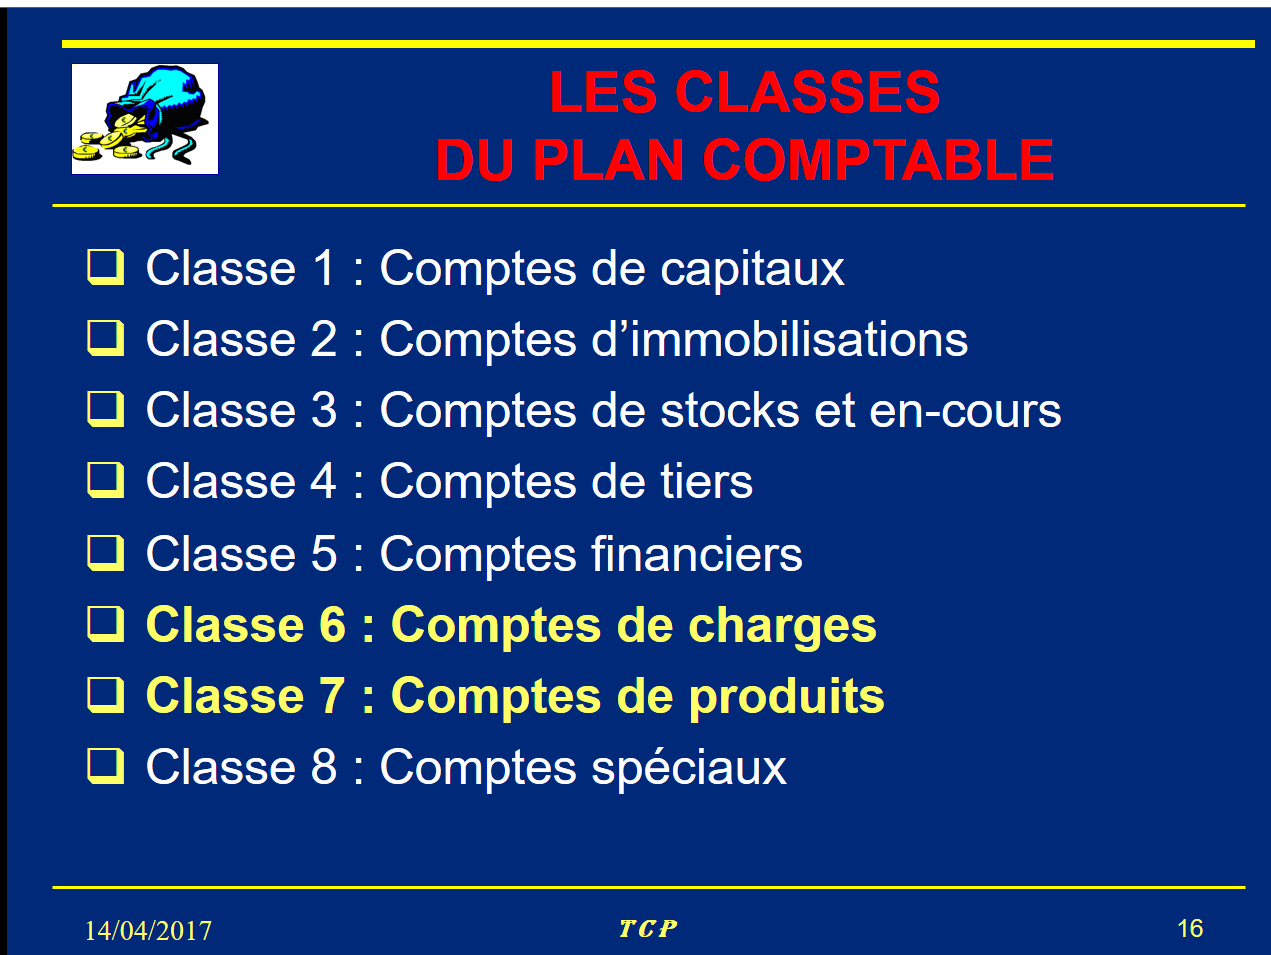 generalites-16-les-classes